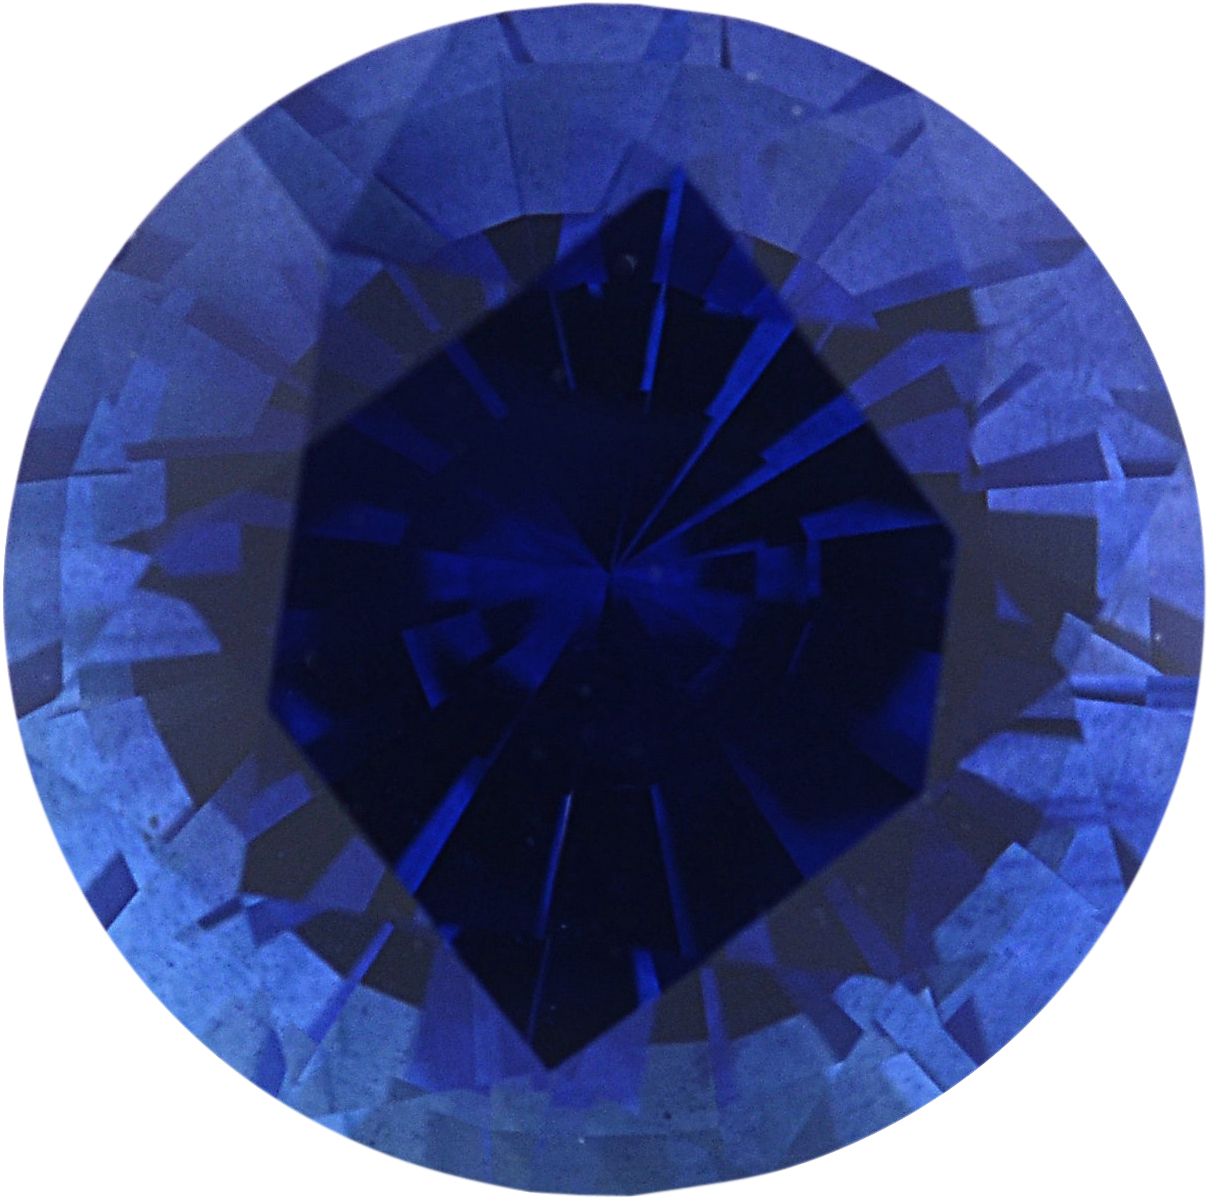 1.06 carats Blue Loose Sapphire Gemstone in Round Cut, 5.97 mm